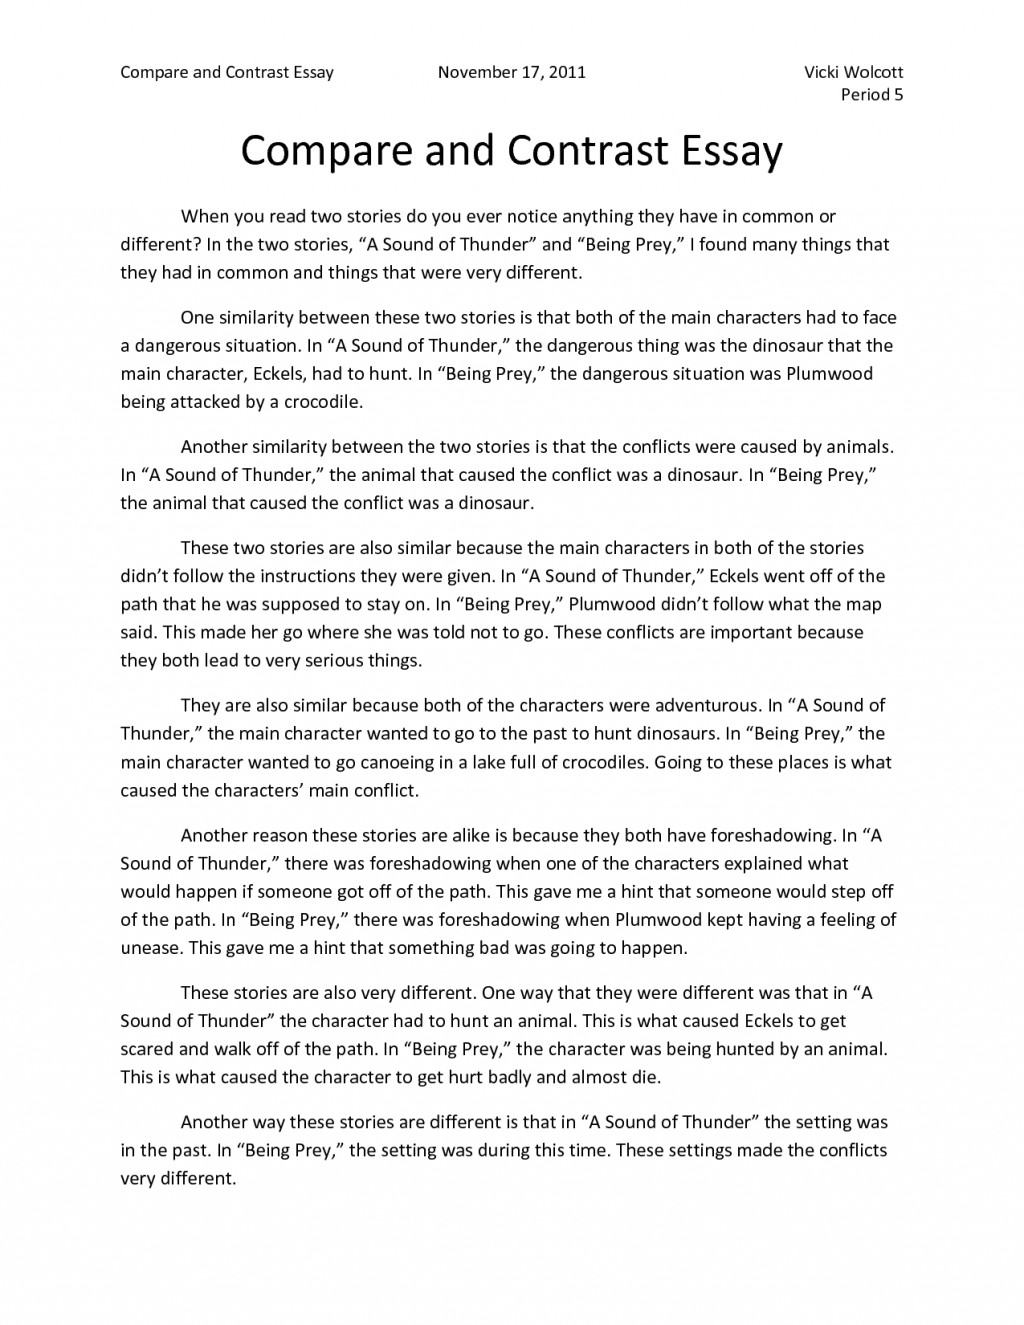 004 Examples Of Compare And Contrast Essays Perfect Essay Introduction Example College  Unique Samples For Comparison Topics Fifth GradeLarge